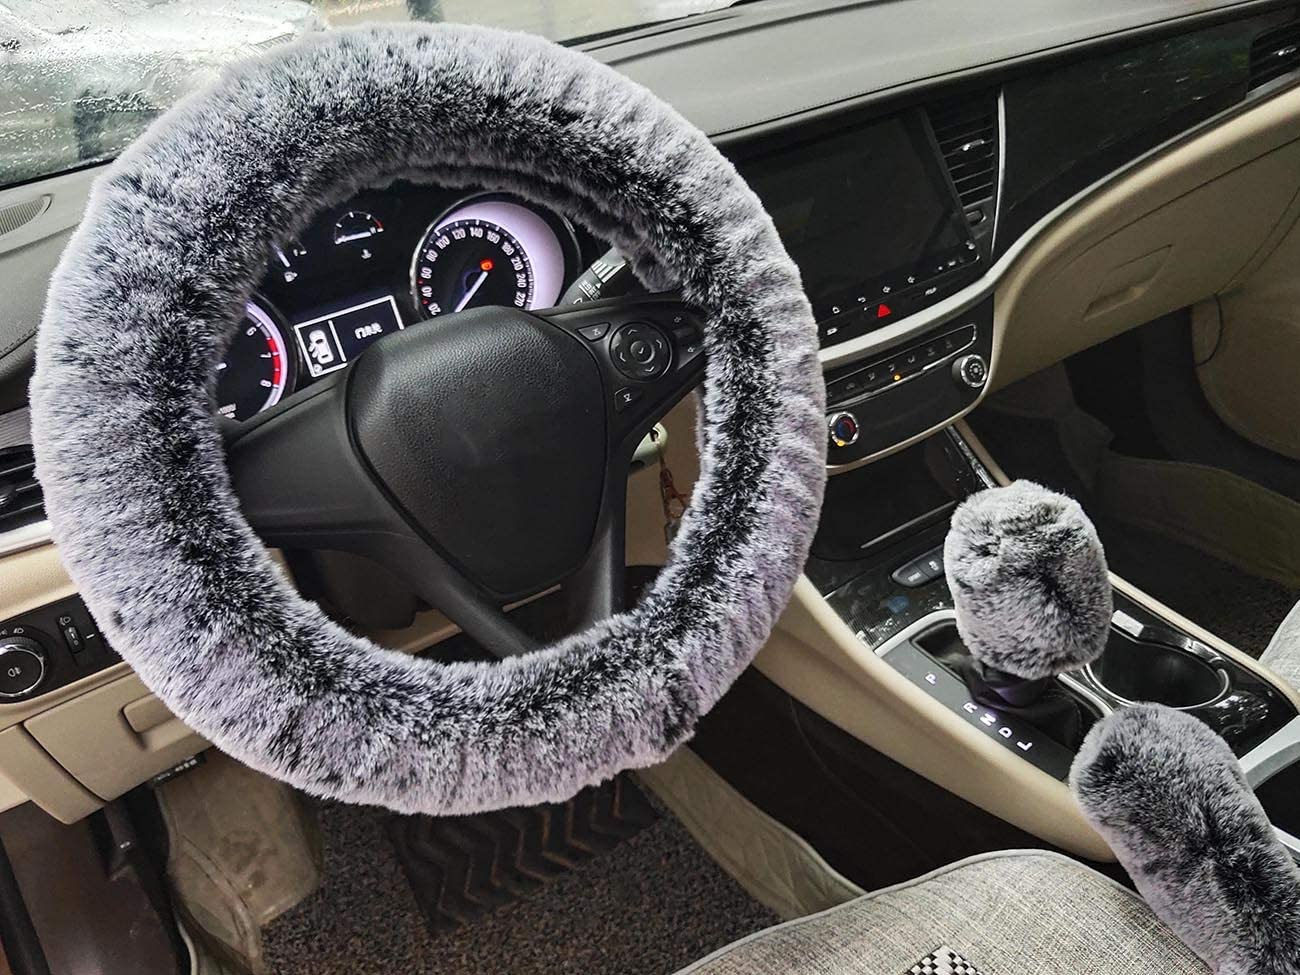 Winter Warm Fluffy Furry Fuzzy Car Steering Wheel Cover,Universal Fit Thickening Faux Fur Plush Steering Covers+Gear Shift Cover and+Brake cover-3pcs Set red